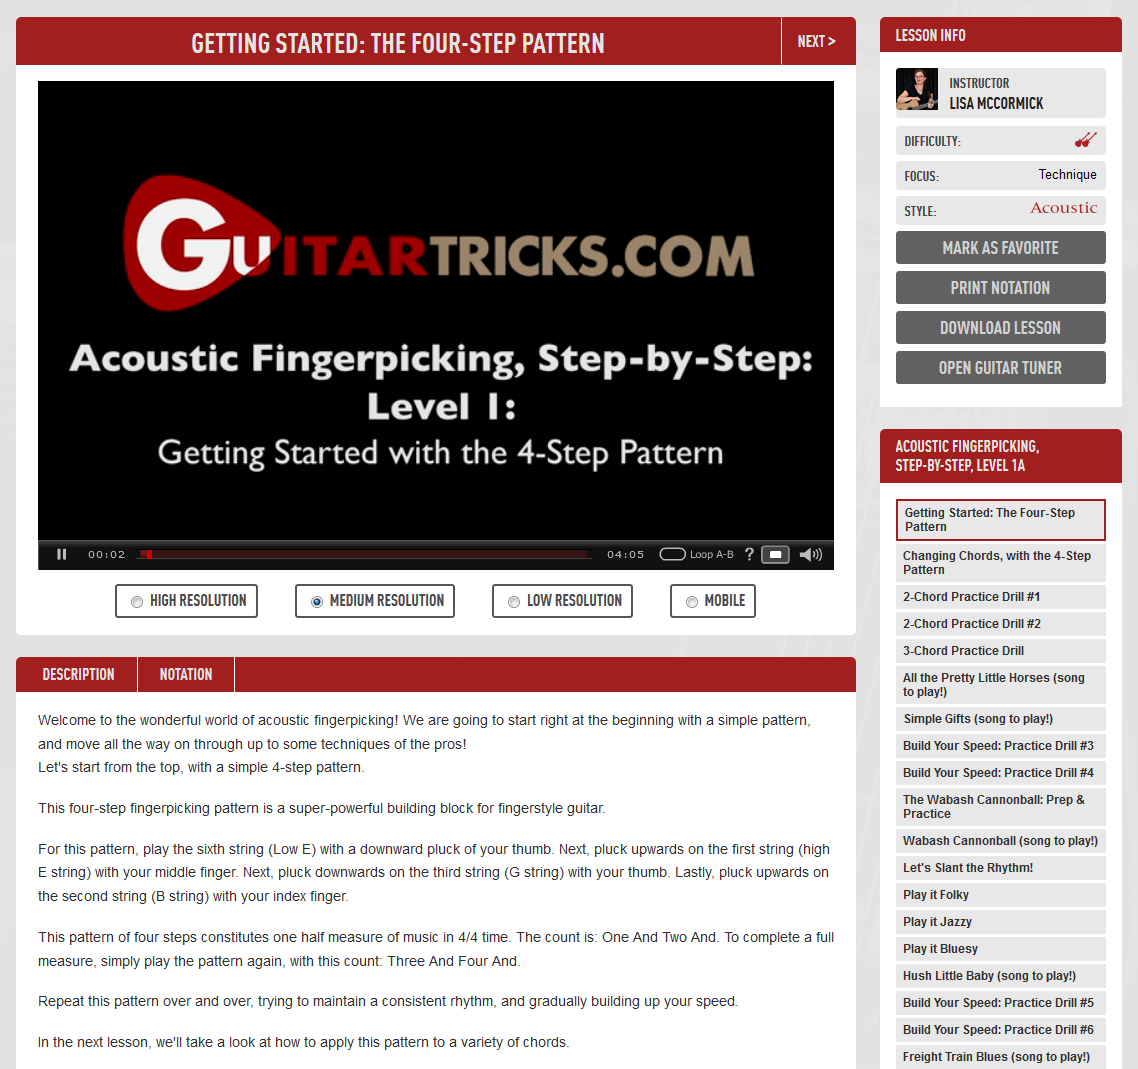 Guitar Tricks Review An Honest And Thorough Look